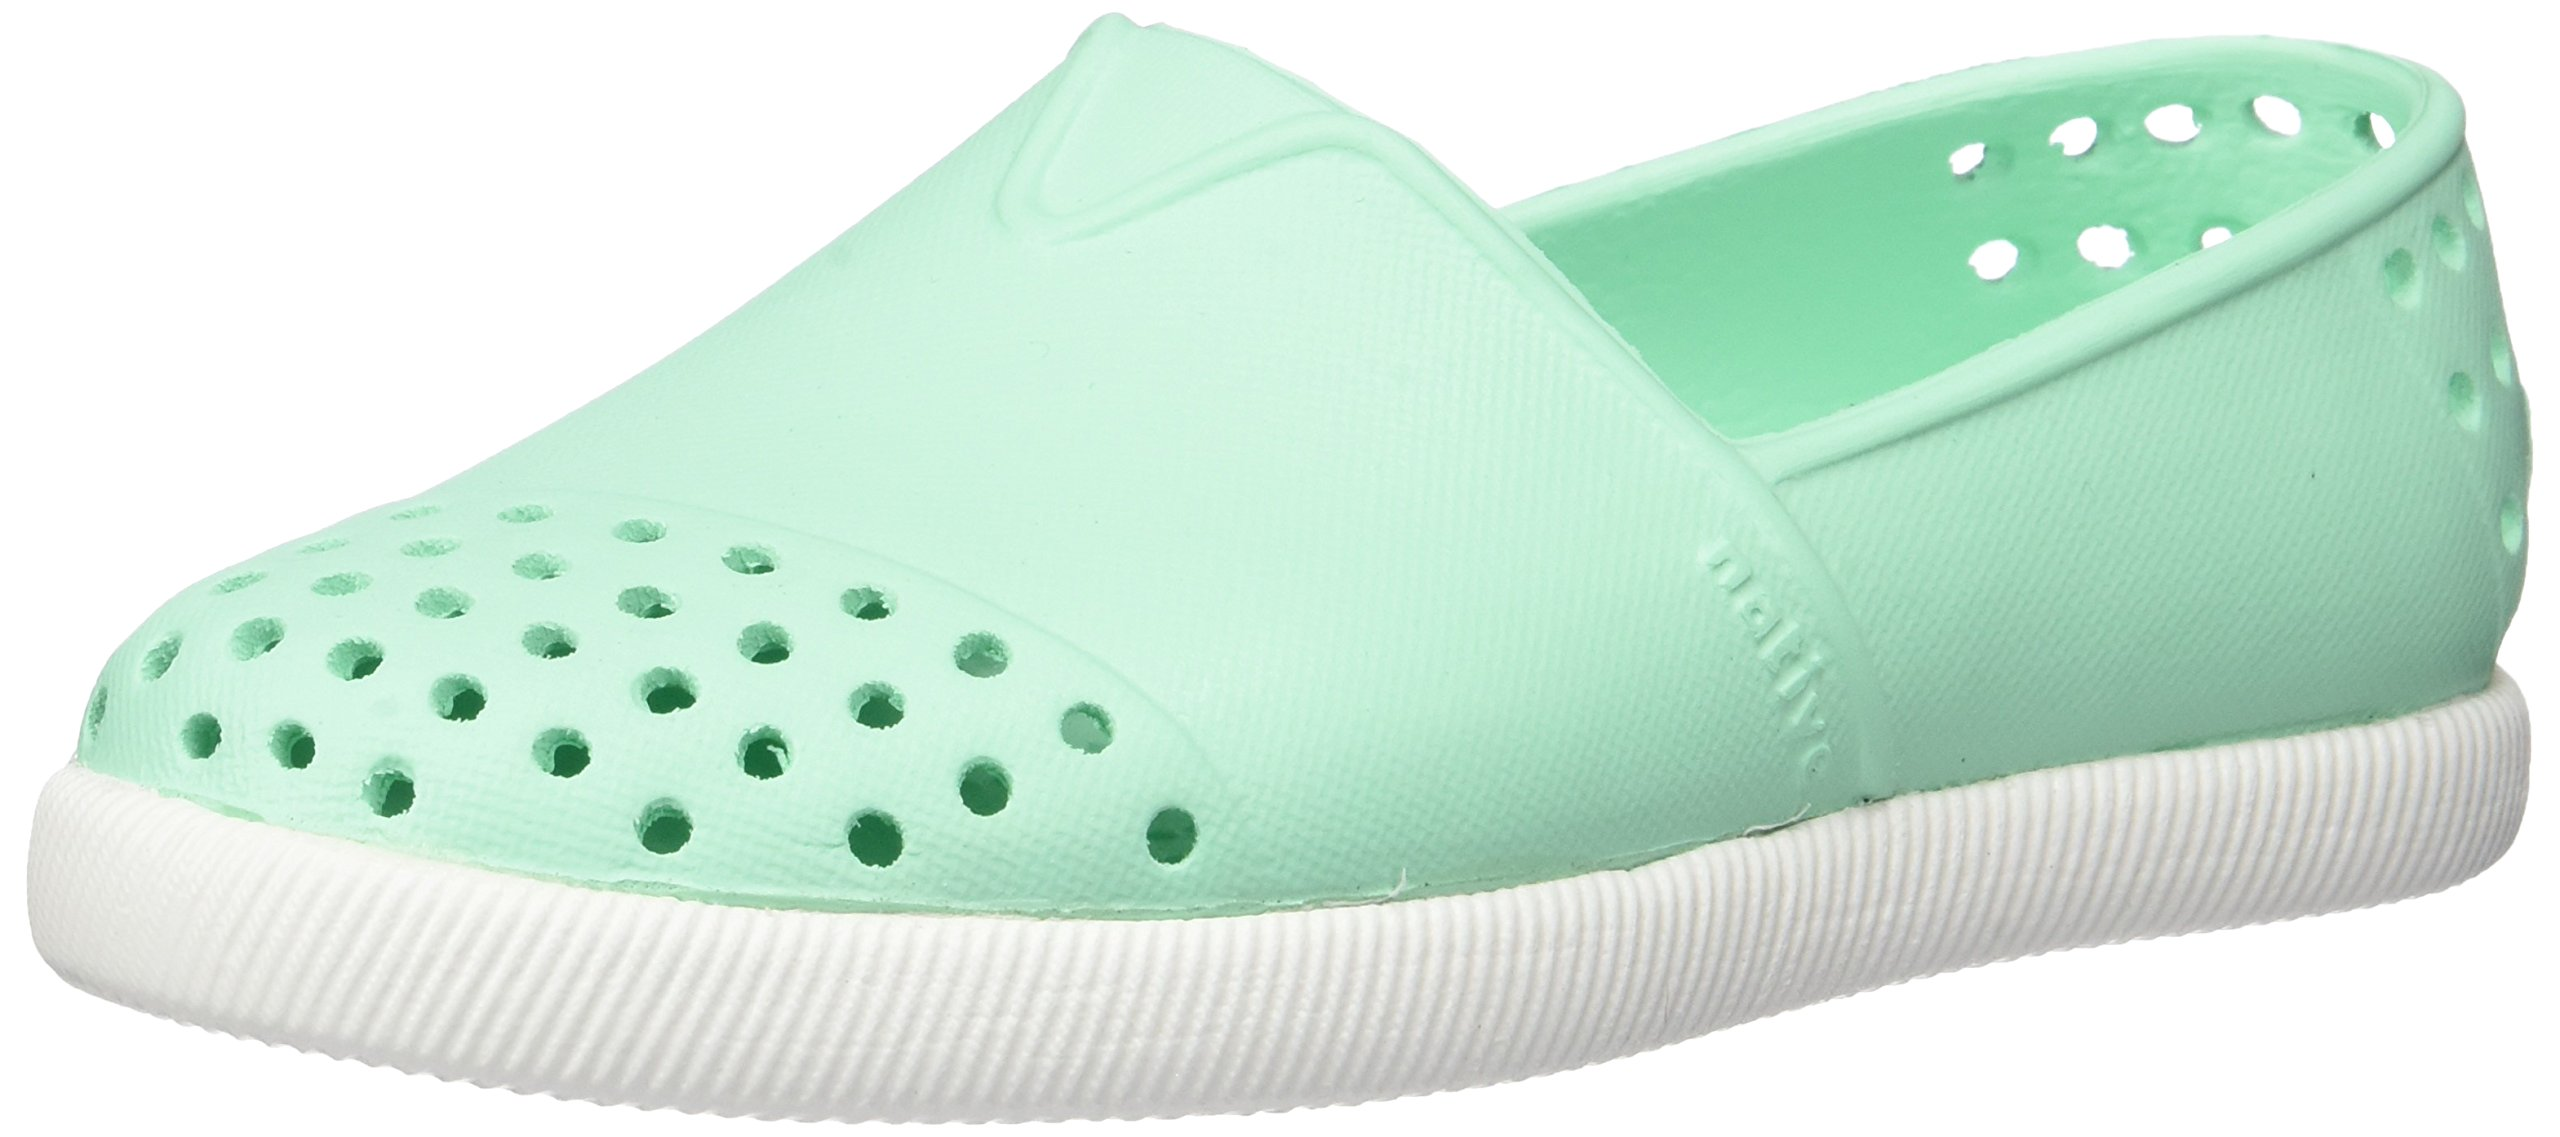 native Kids Kids' Verona Slip-on, Glass Green/Shell White, 5 M US Toddler by native